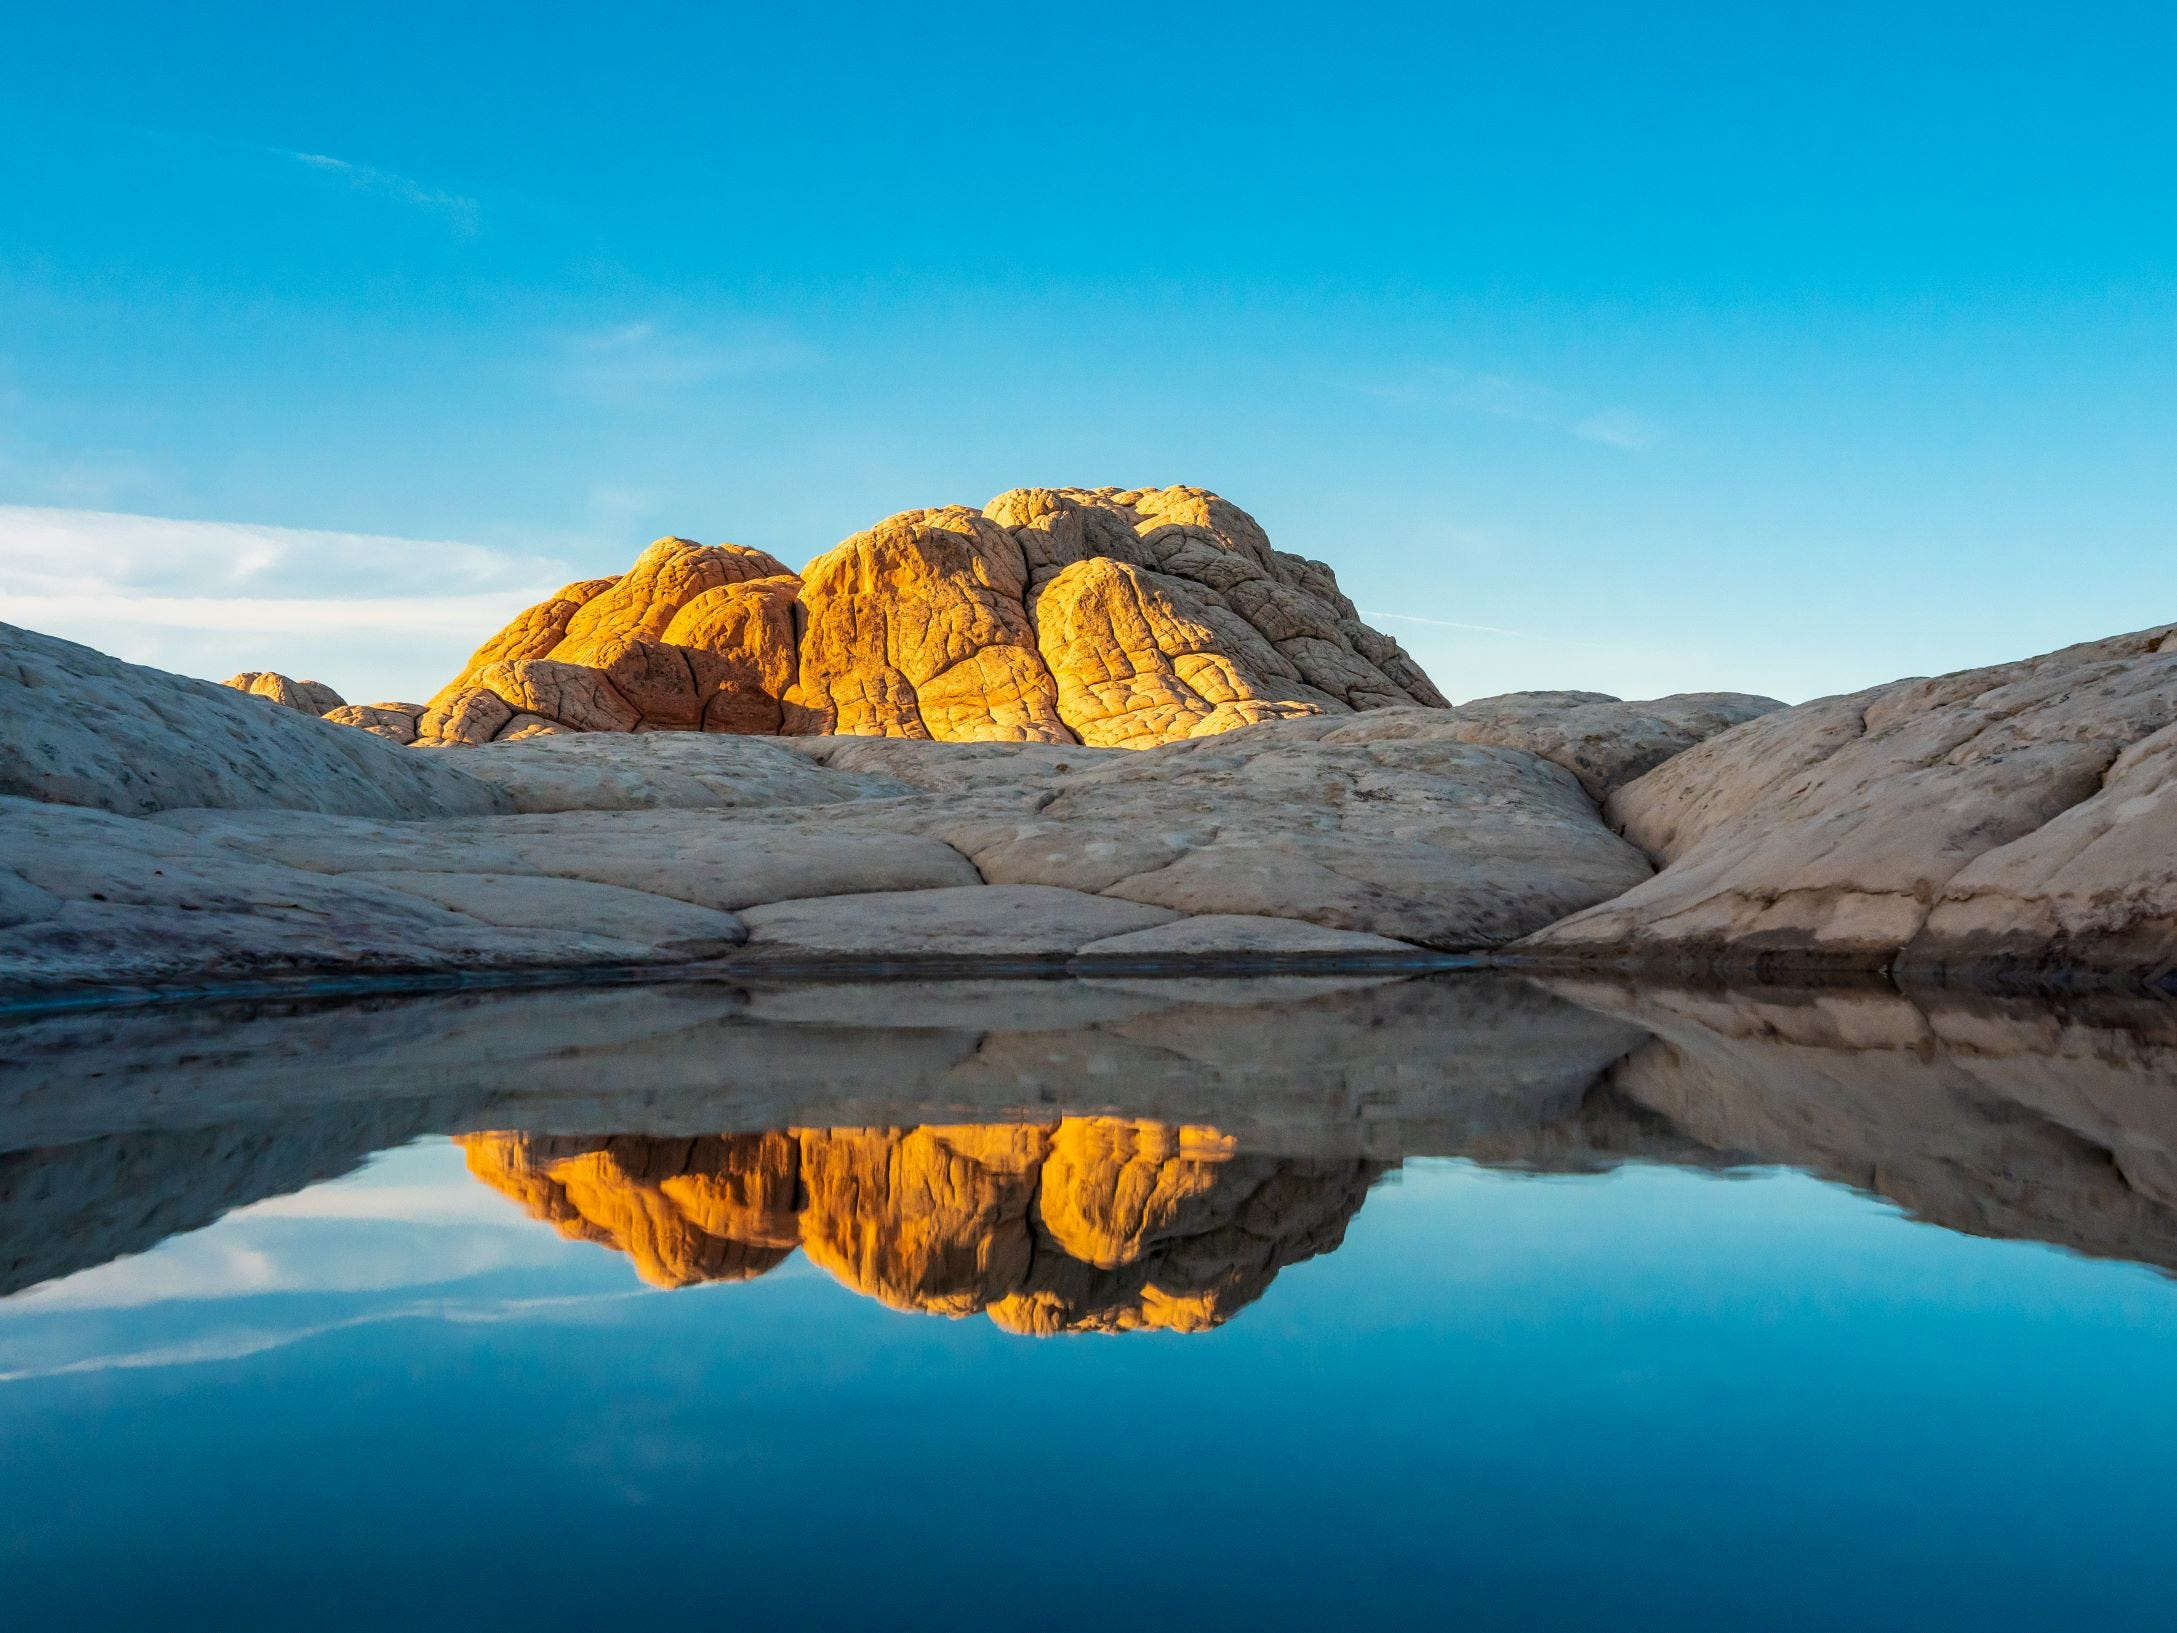 A rocky dome is reflected in the water at White Pocket.